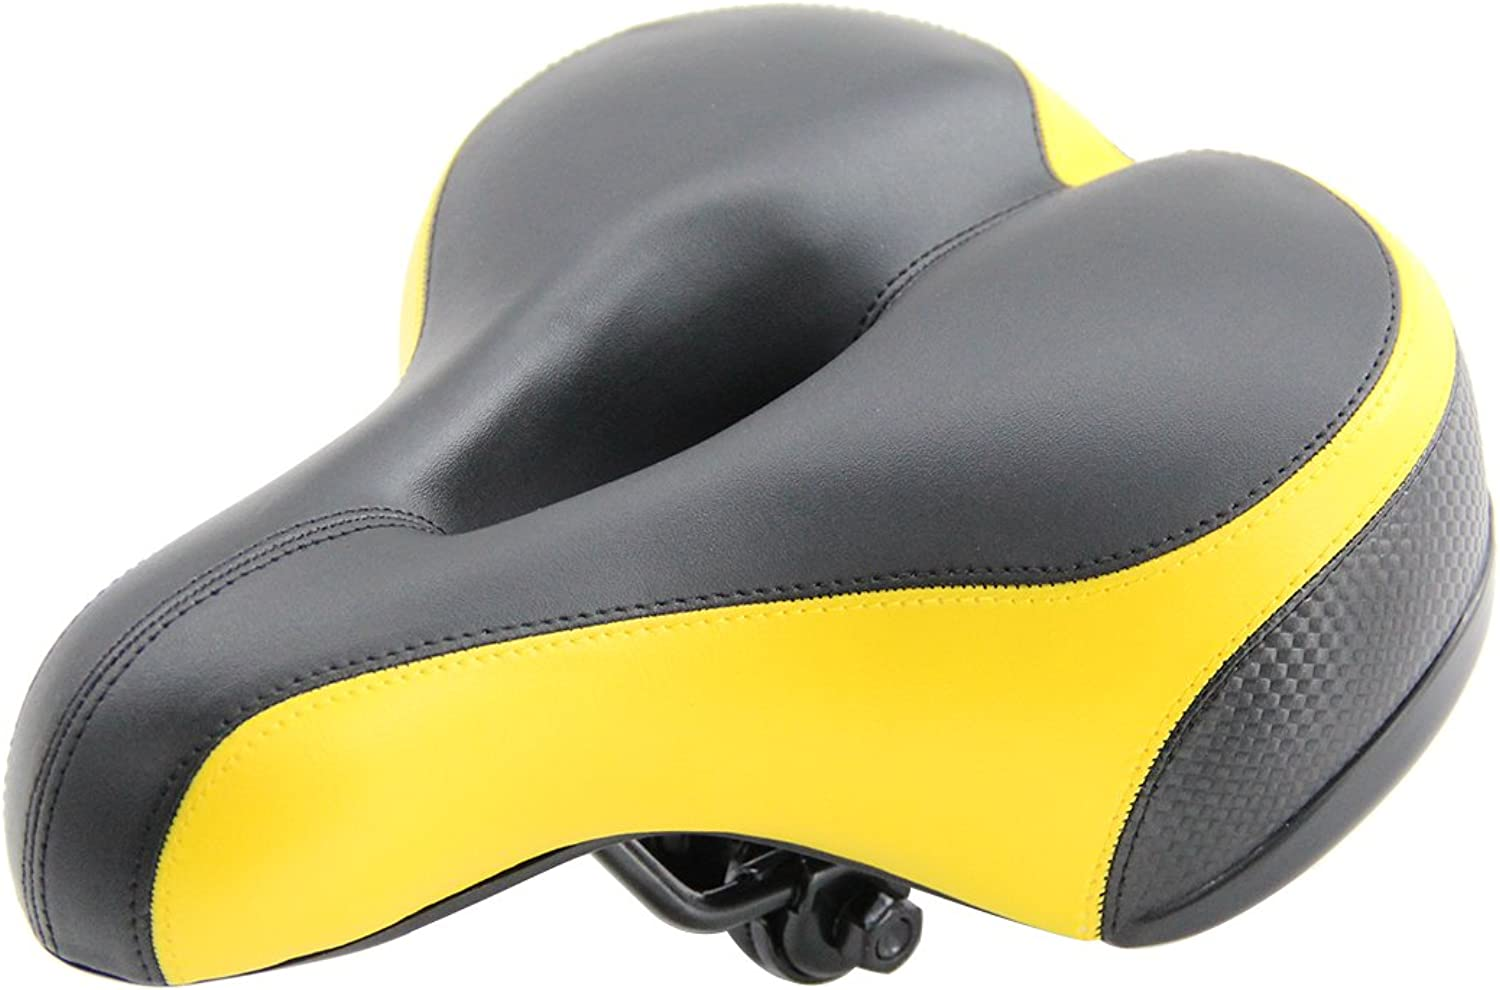 UNISTRENGH Comfortable Bike Seat for Men and Women  Oversize Bicycle Saddle with Safety Reflective Tape Soft Cushion Fit for Mountain Bike, Road Bicycle, Hybrid, Cruiser and Stationary Exercise Bike